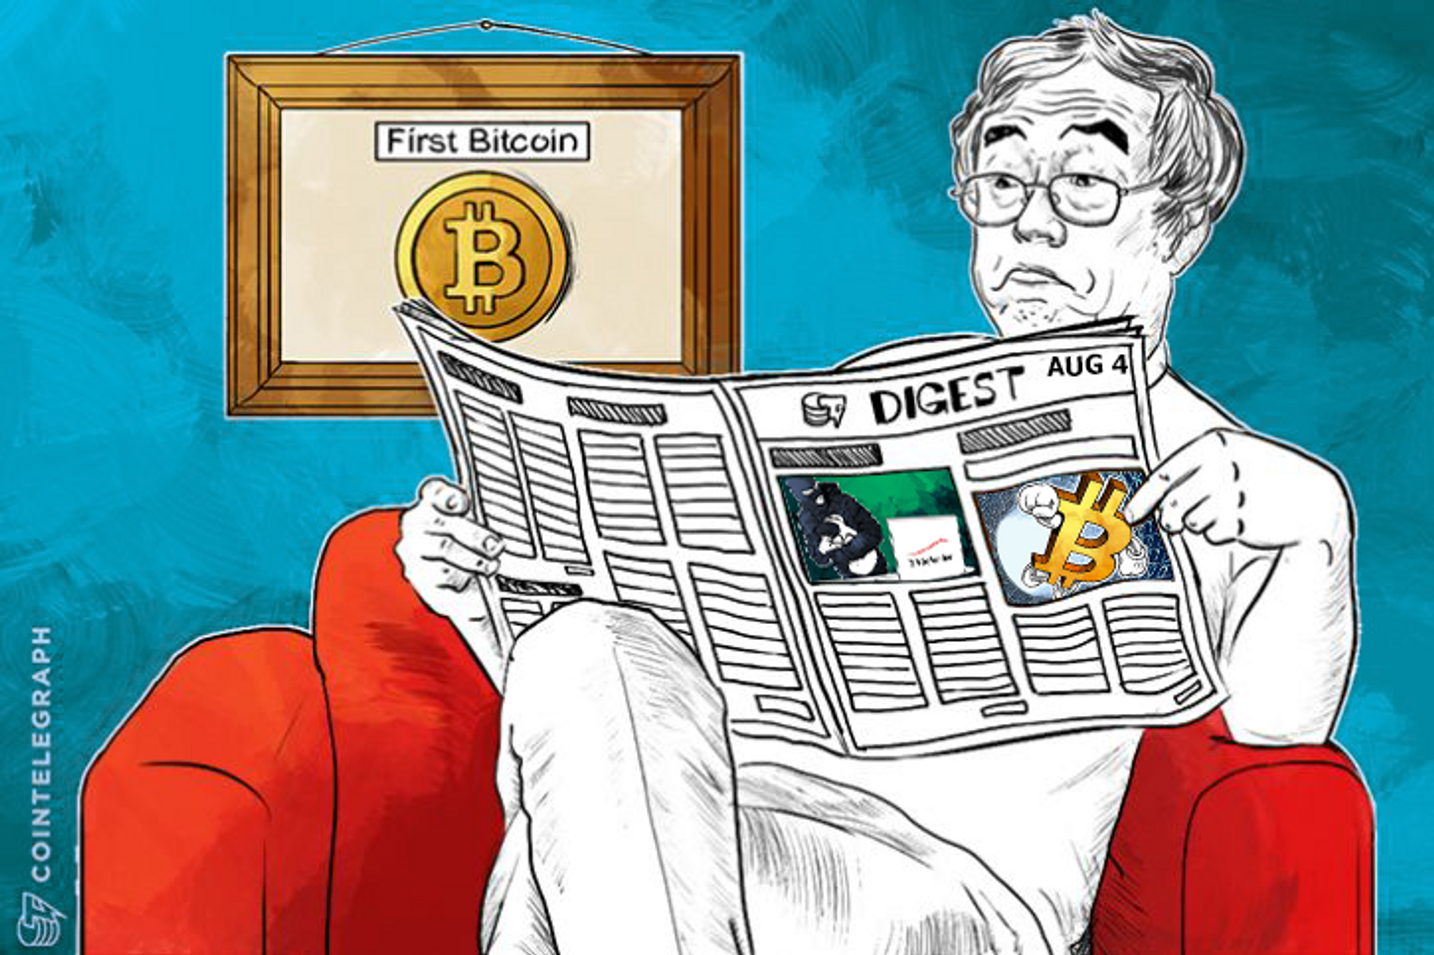 AUG 4 DIGEST: Mt. Gox 'Ran out of Funds 6 Months before Going Bust'; Australia Warms towards Bitcoin as Currency